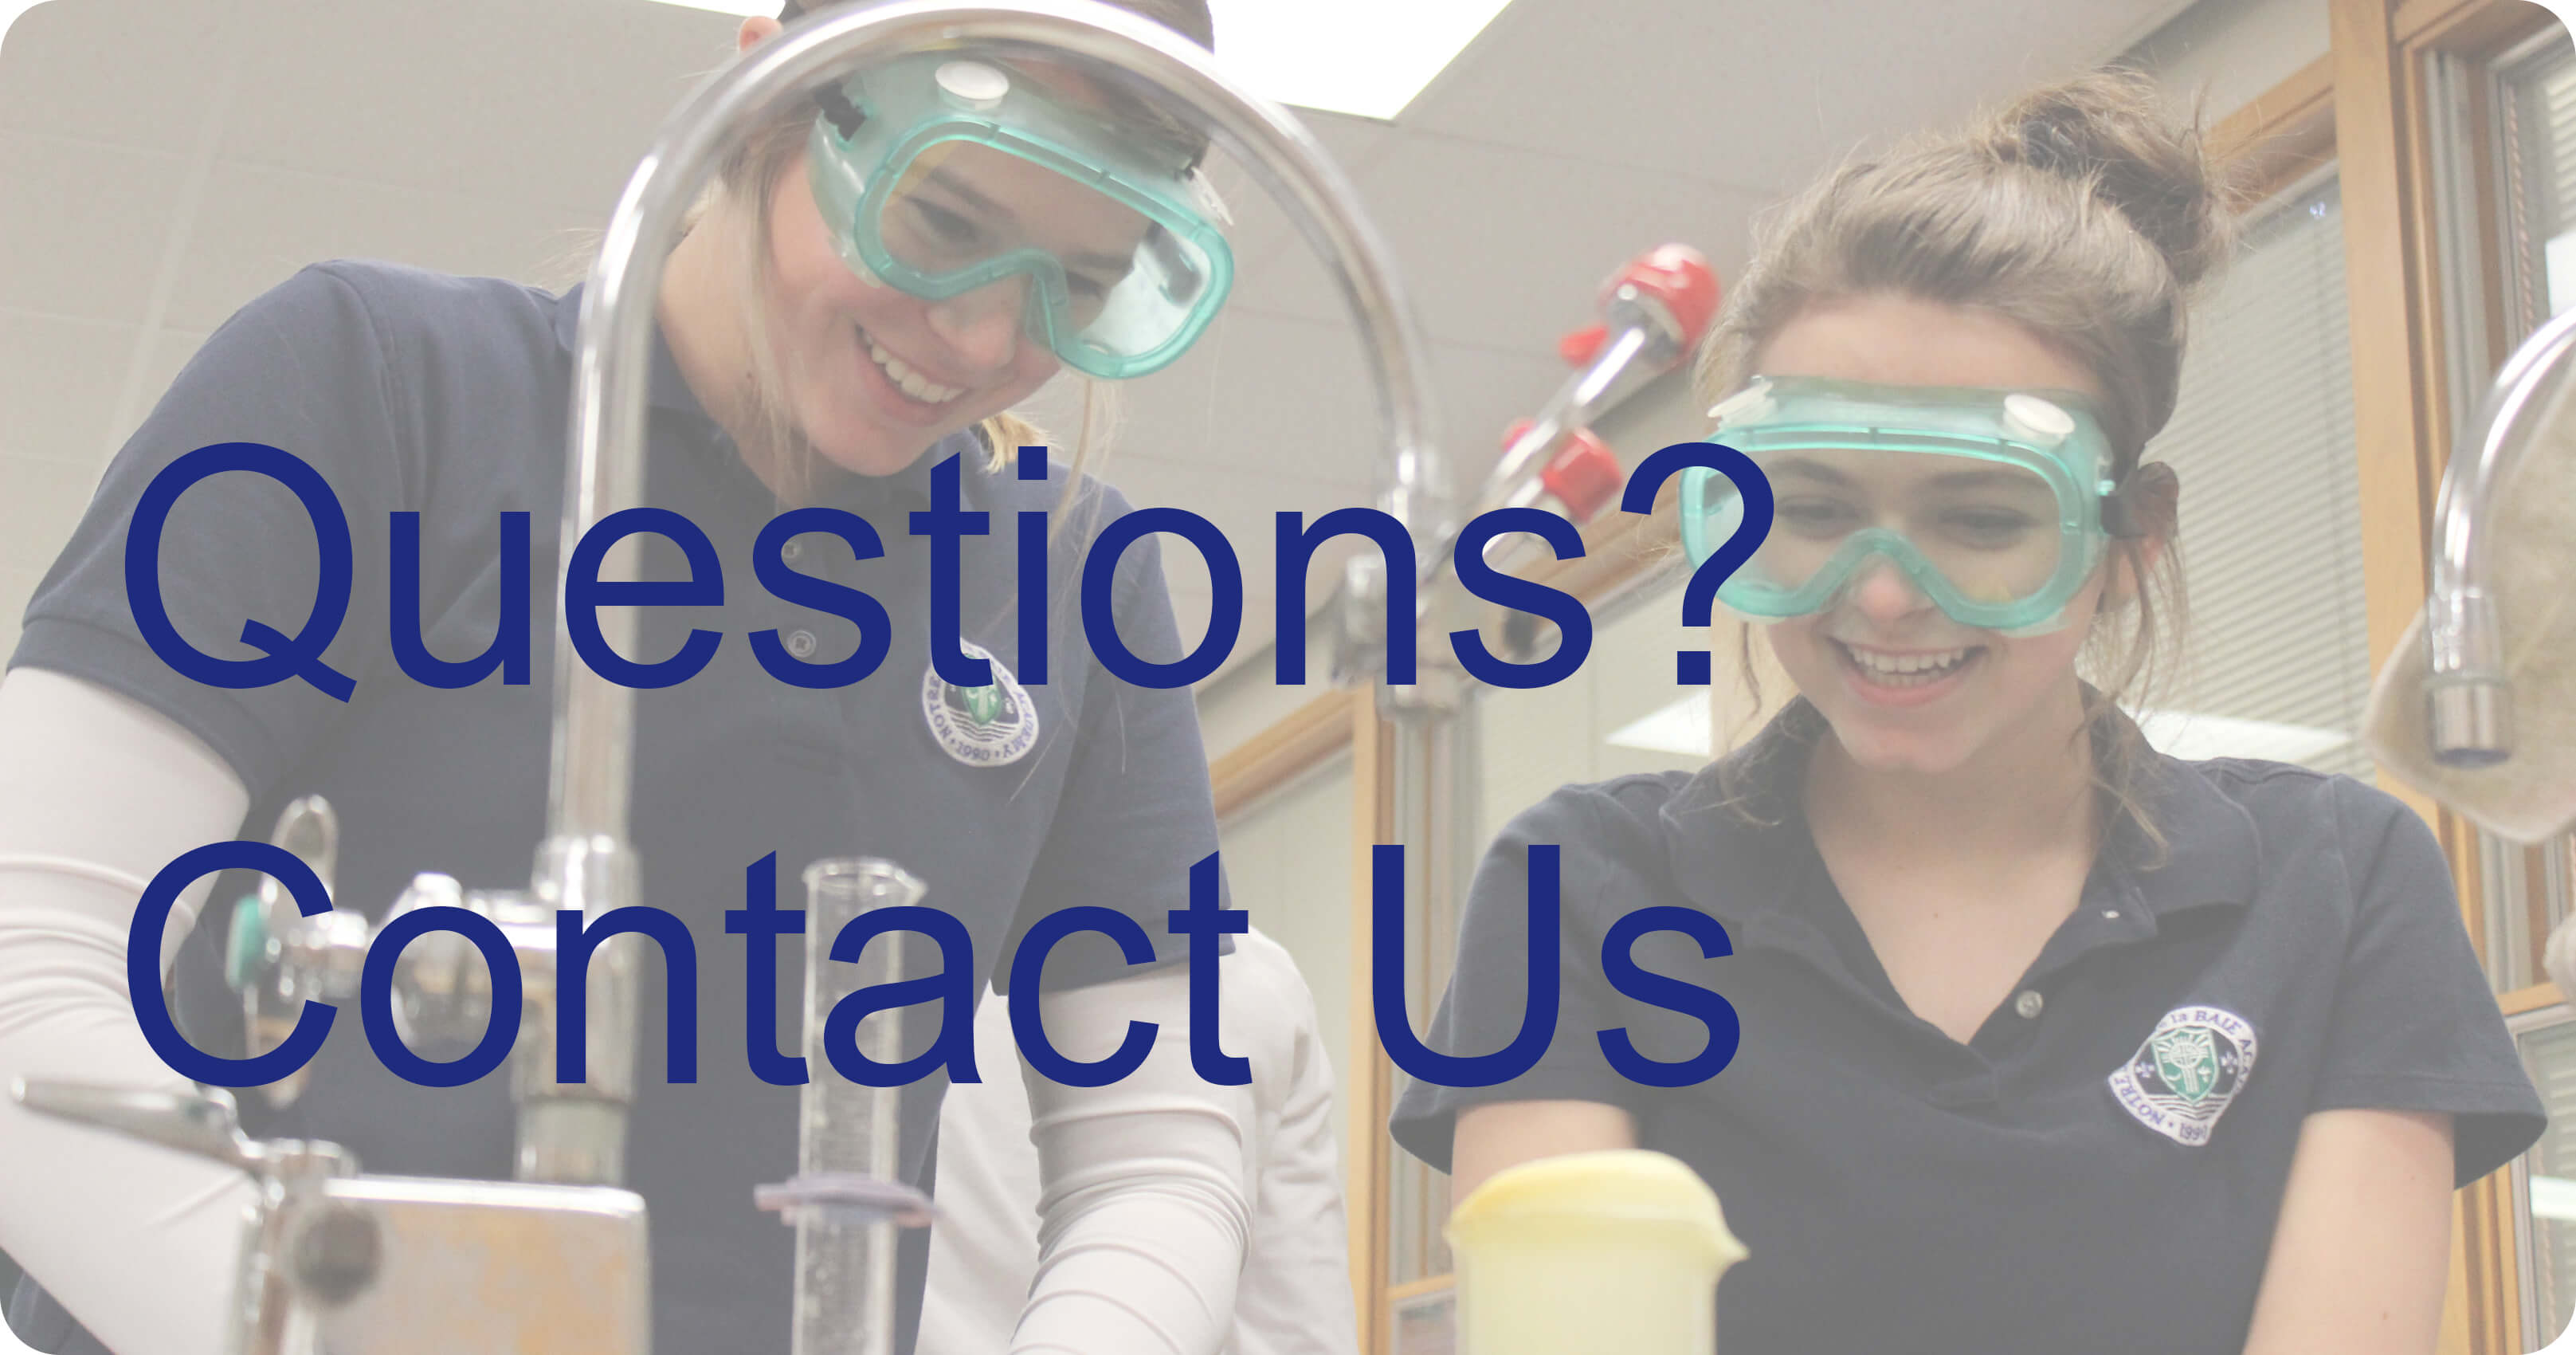 Photo of two students in a science lab with text over it saying Questions? Contact Us